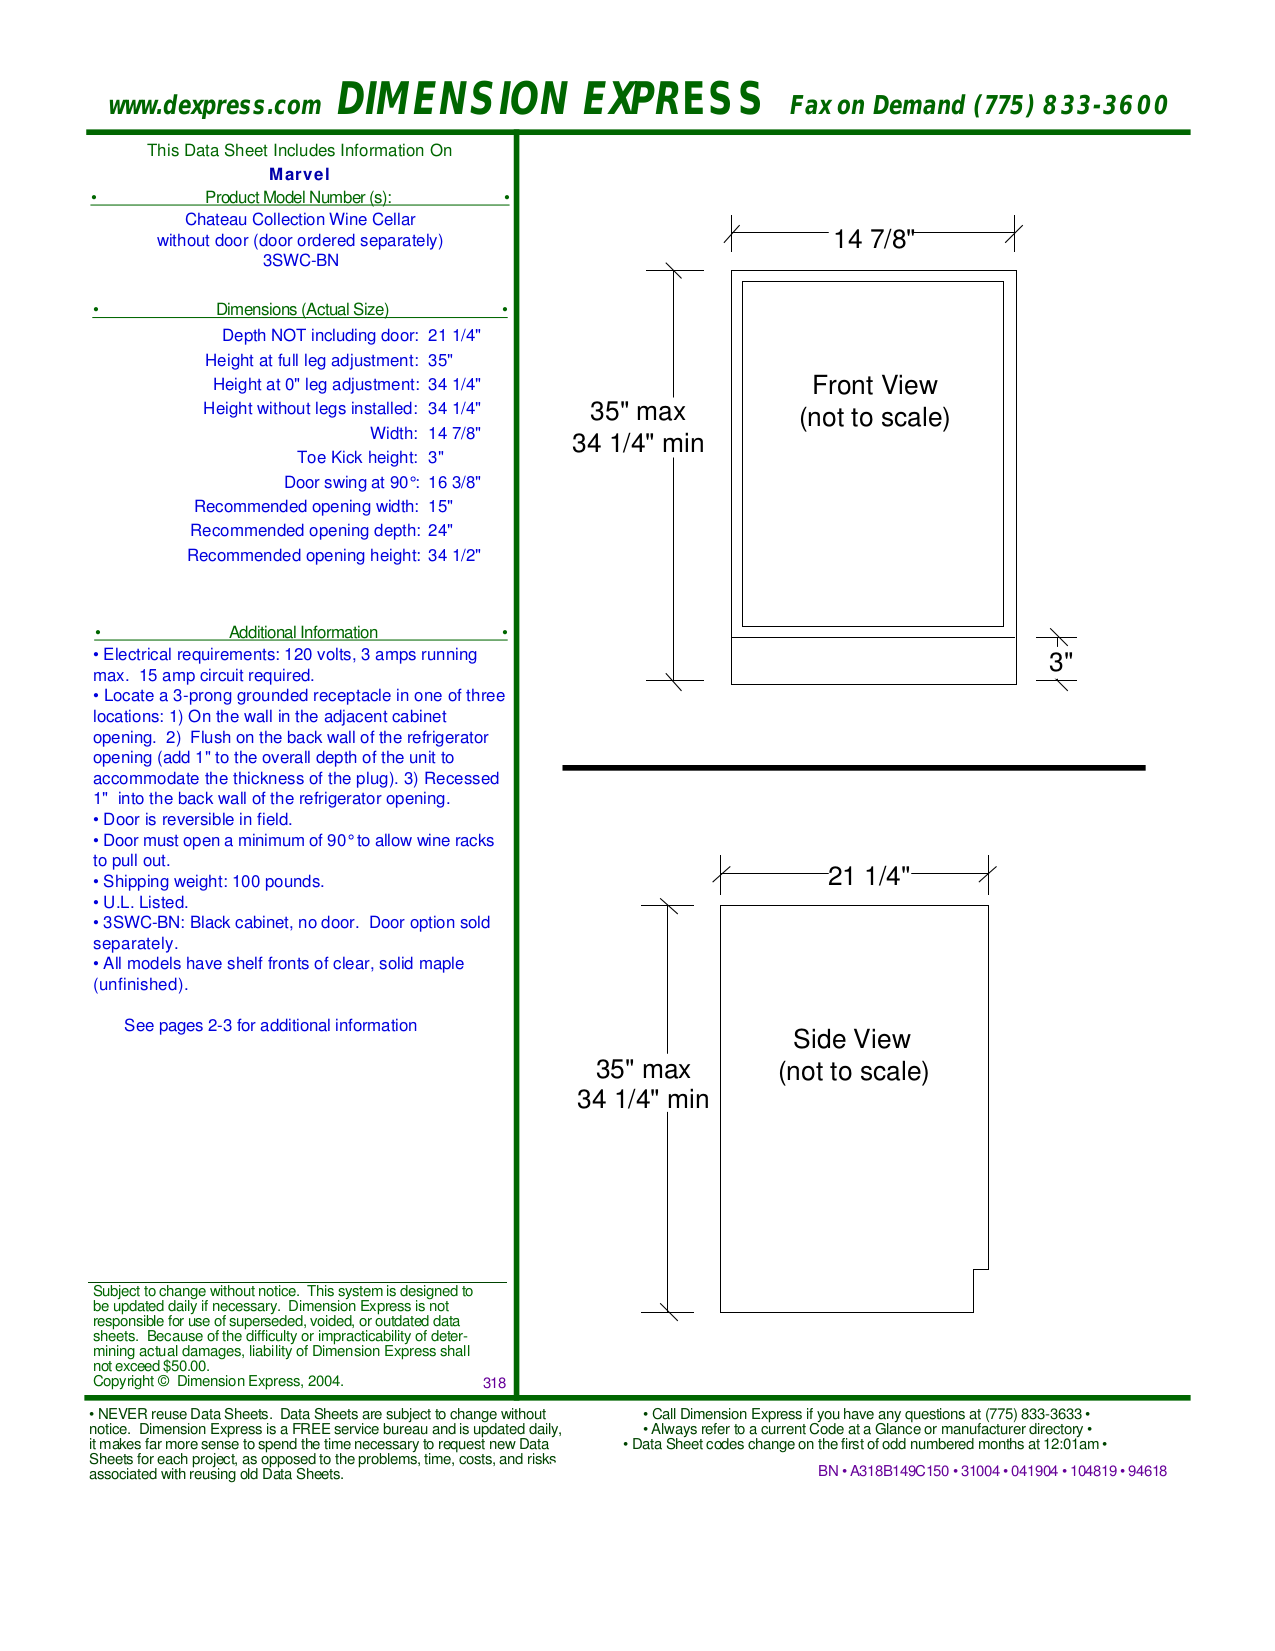 pdf for Marvel Refrigerator 3SWC-BN manual